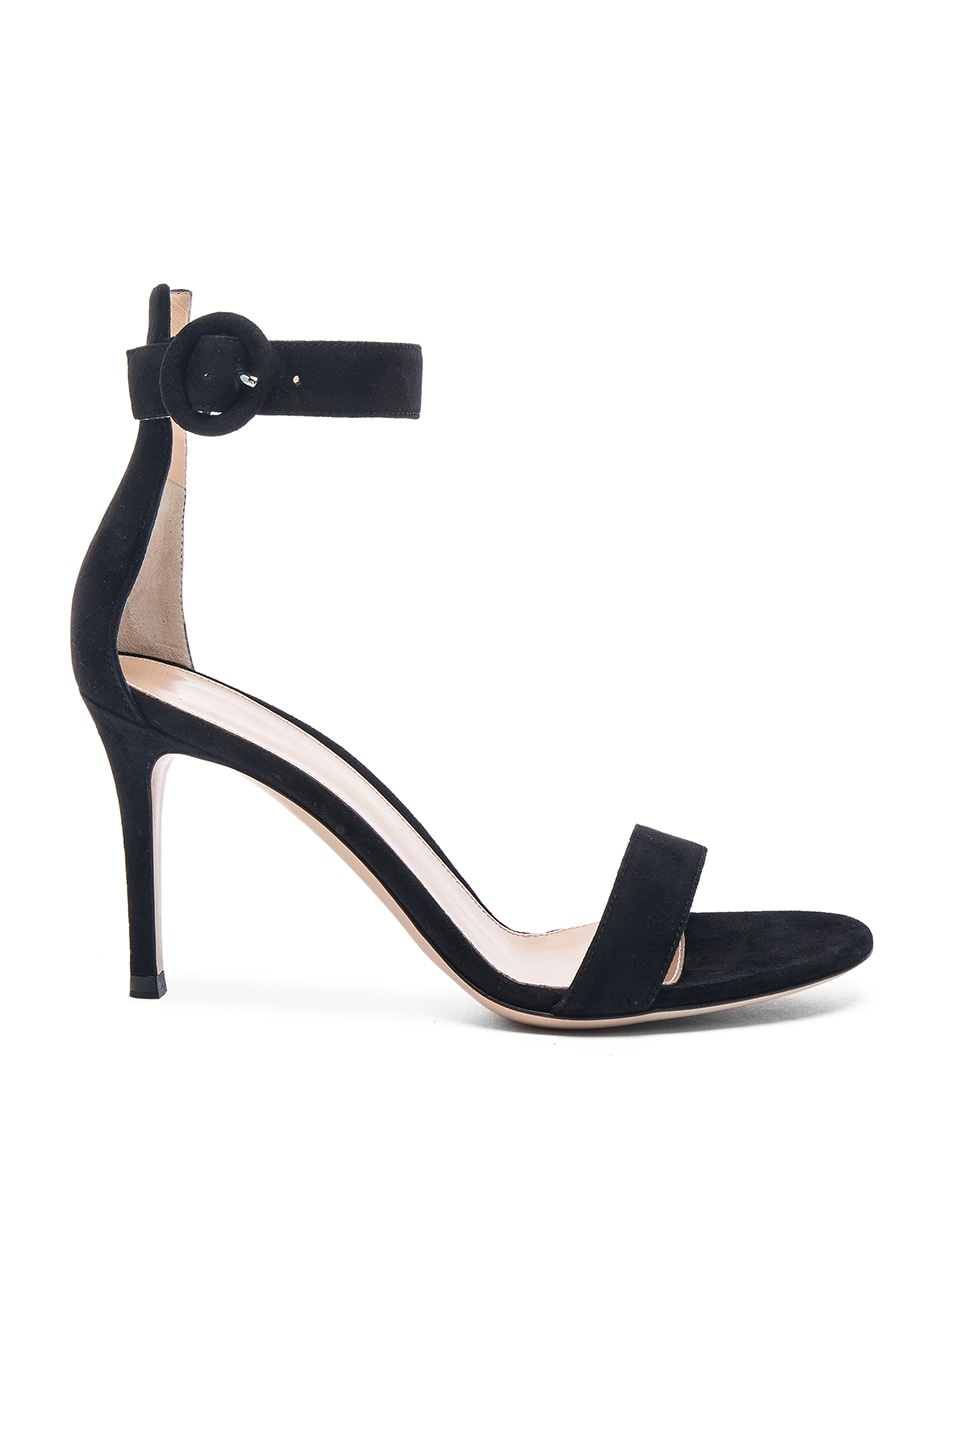 Image 1 of Gianvito Rossi Suede Portofino Heels in Black